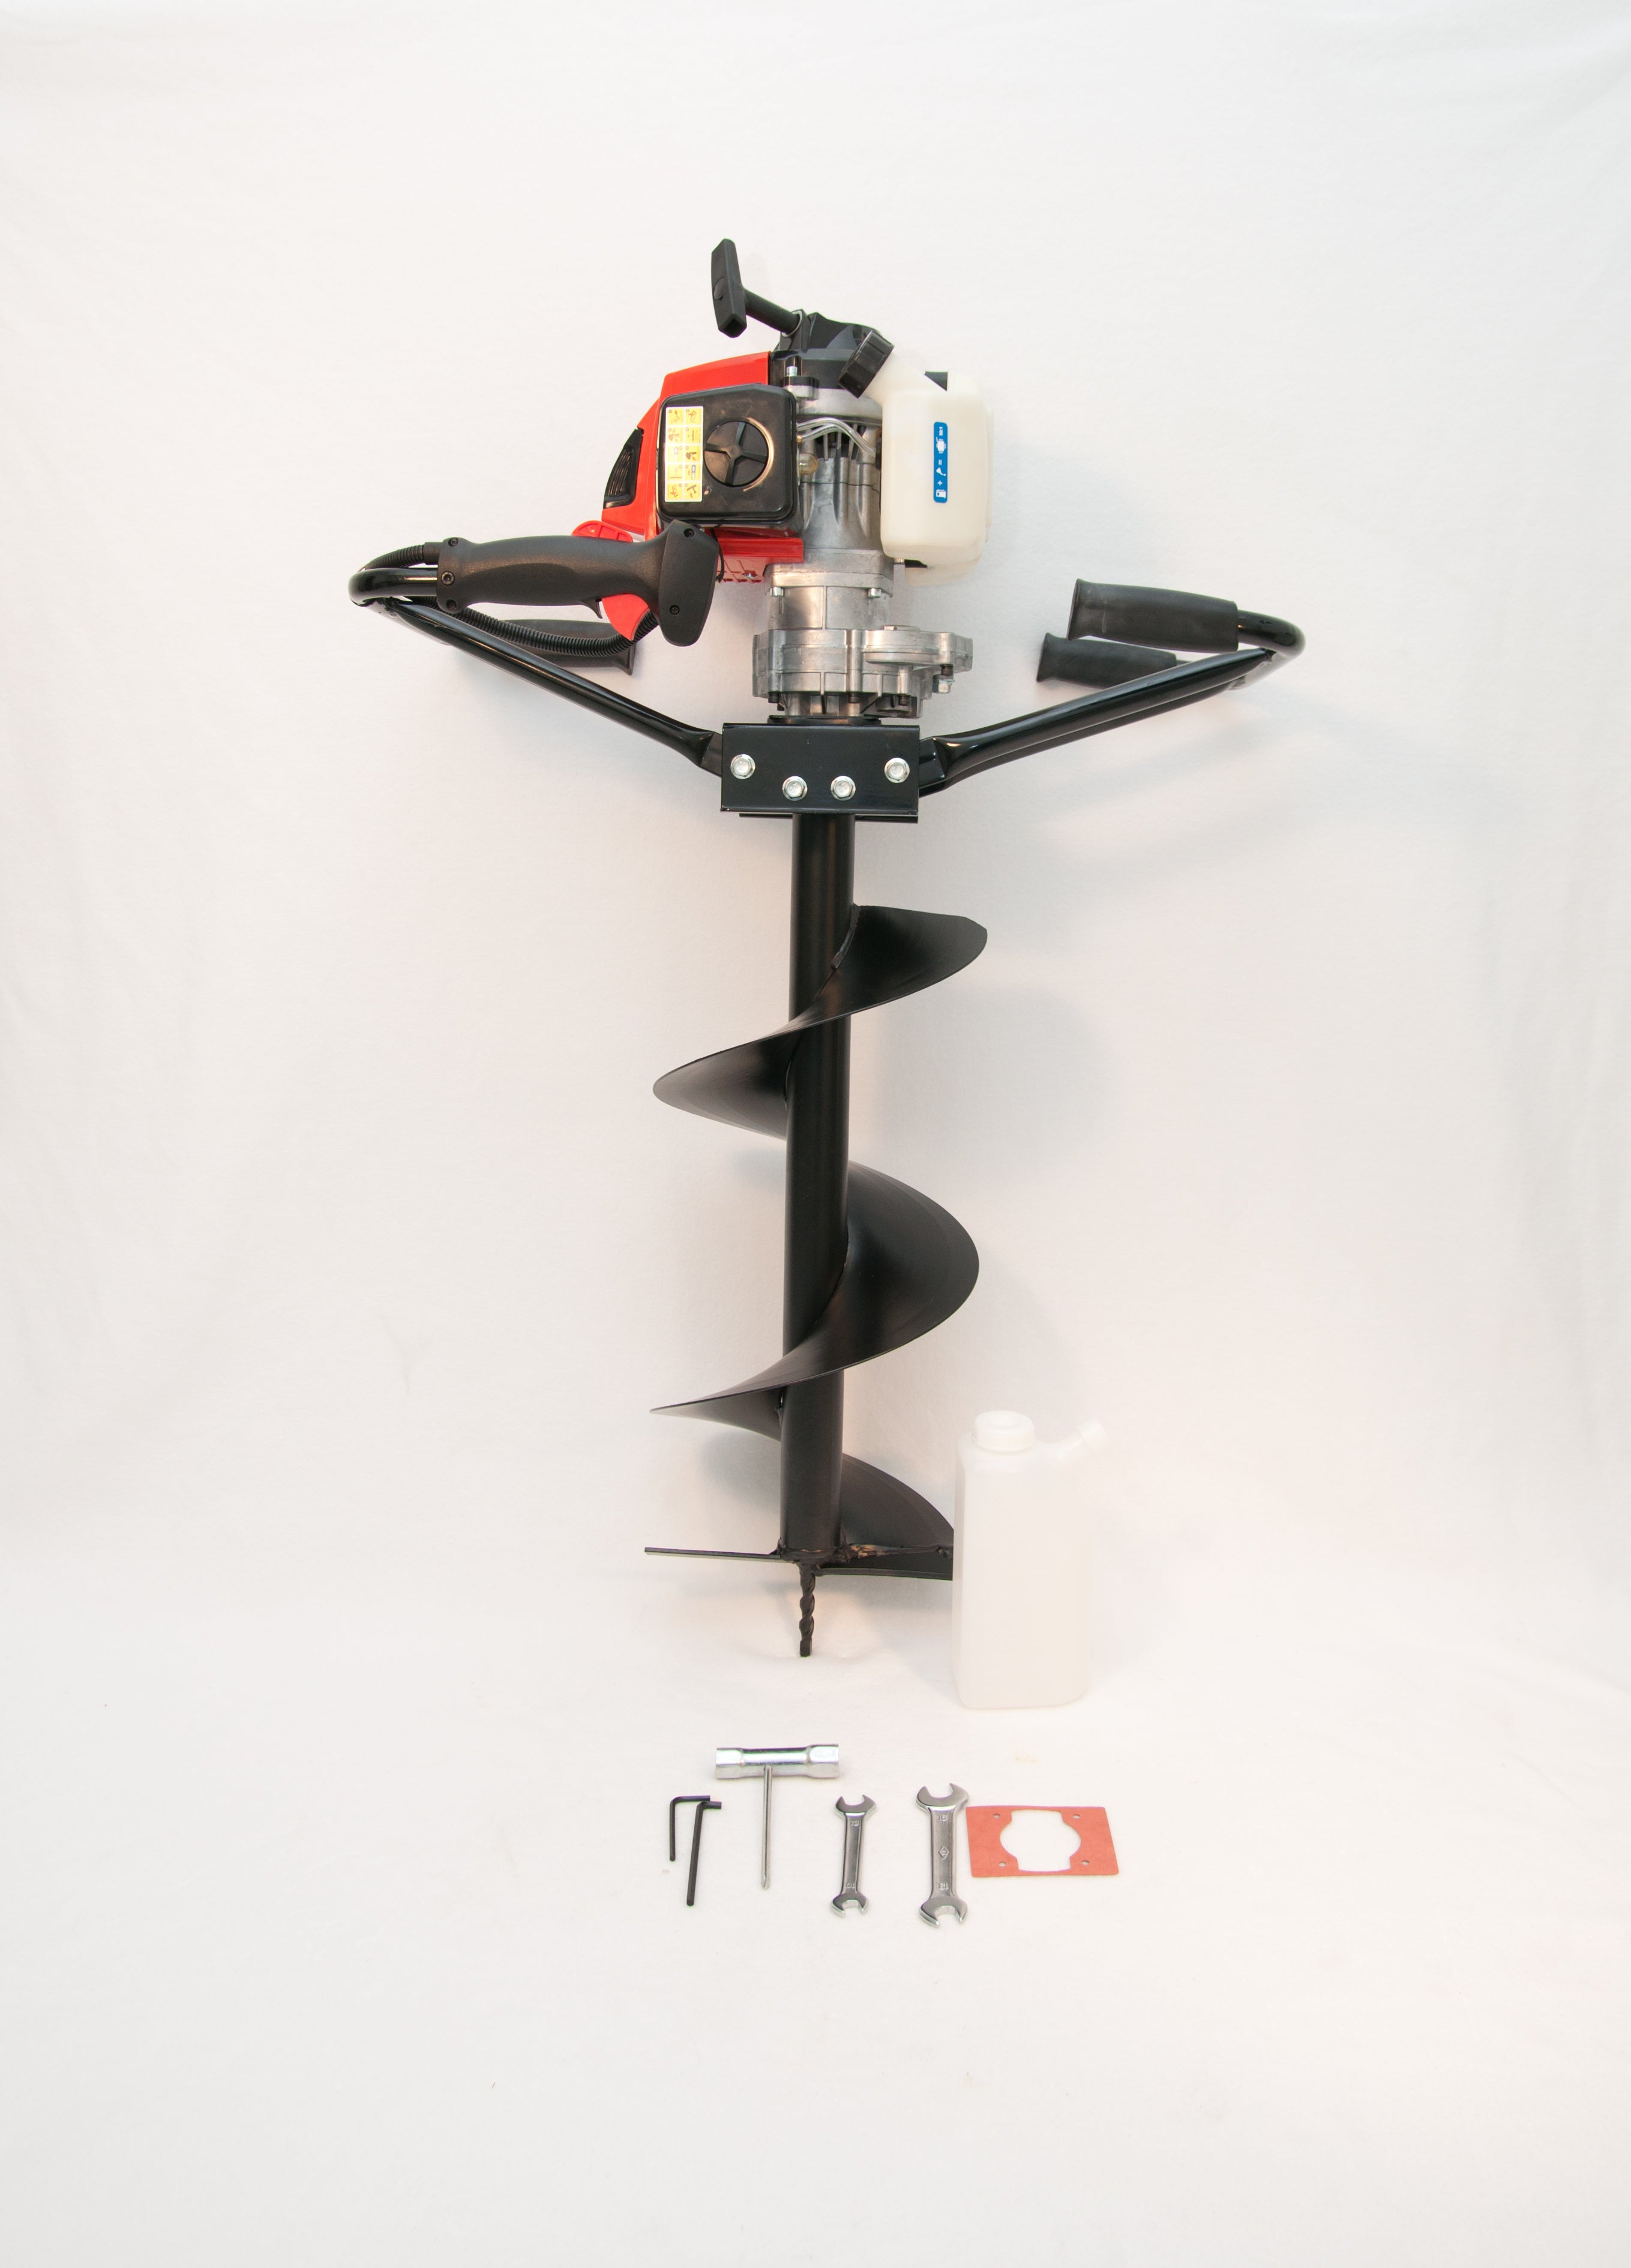 Tool Tuff Combo One Auger Choose Size And Gas Powered 2 Person